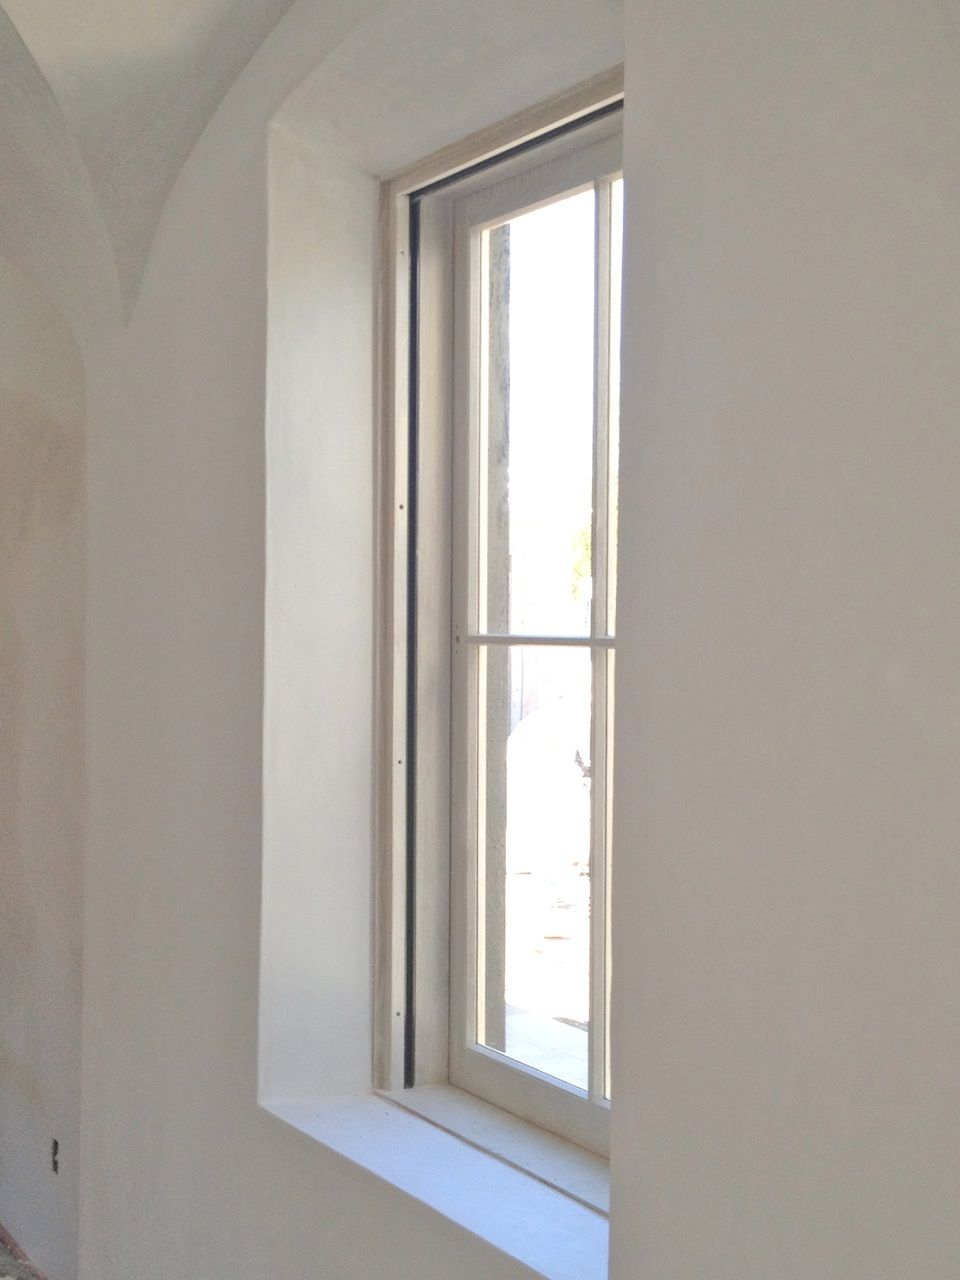 Plaster Walls Around Inset Deep Window Sill No Molding With Arch Detail Plaster Walls Interior Windows Window Sill